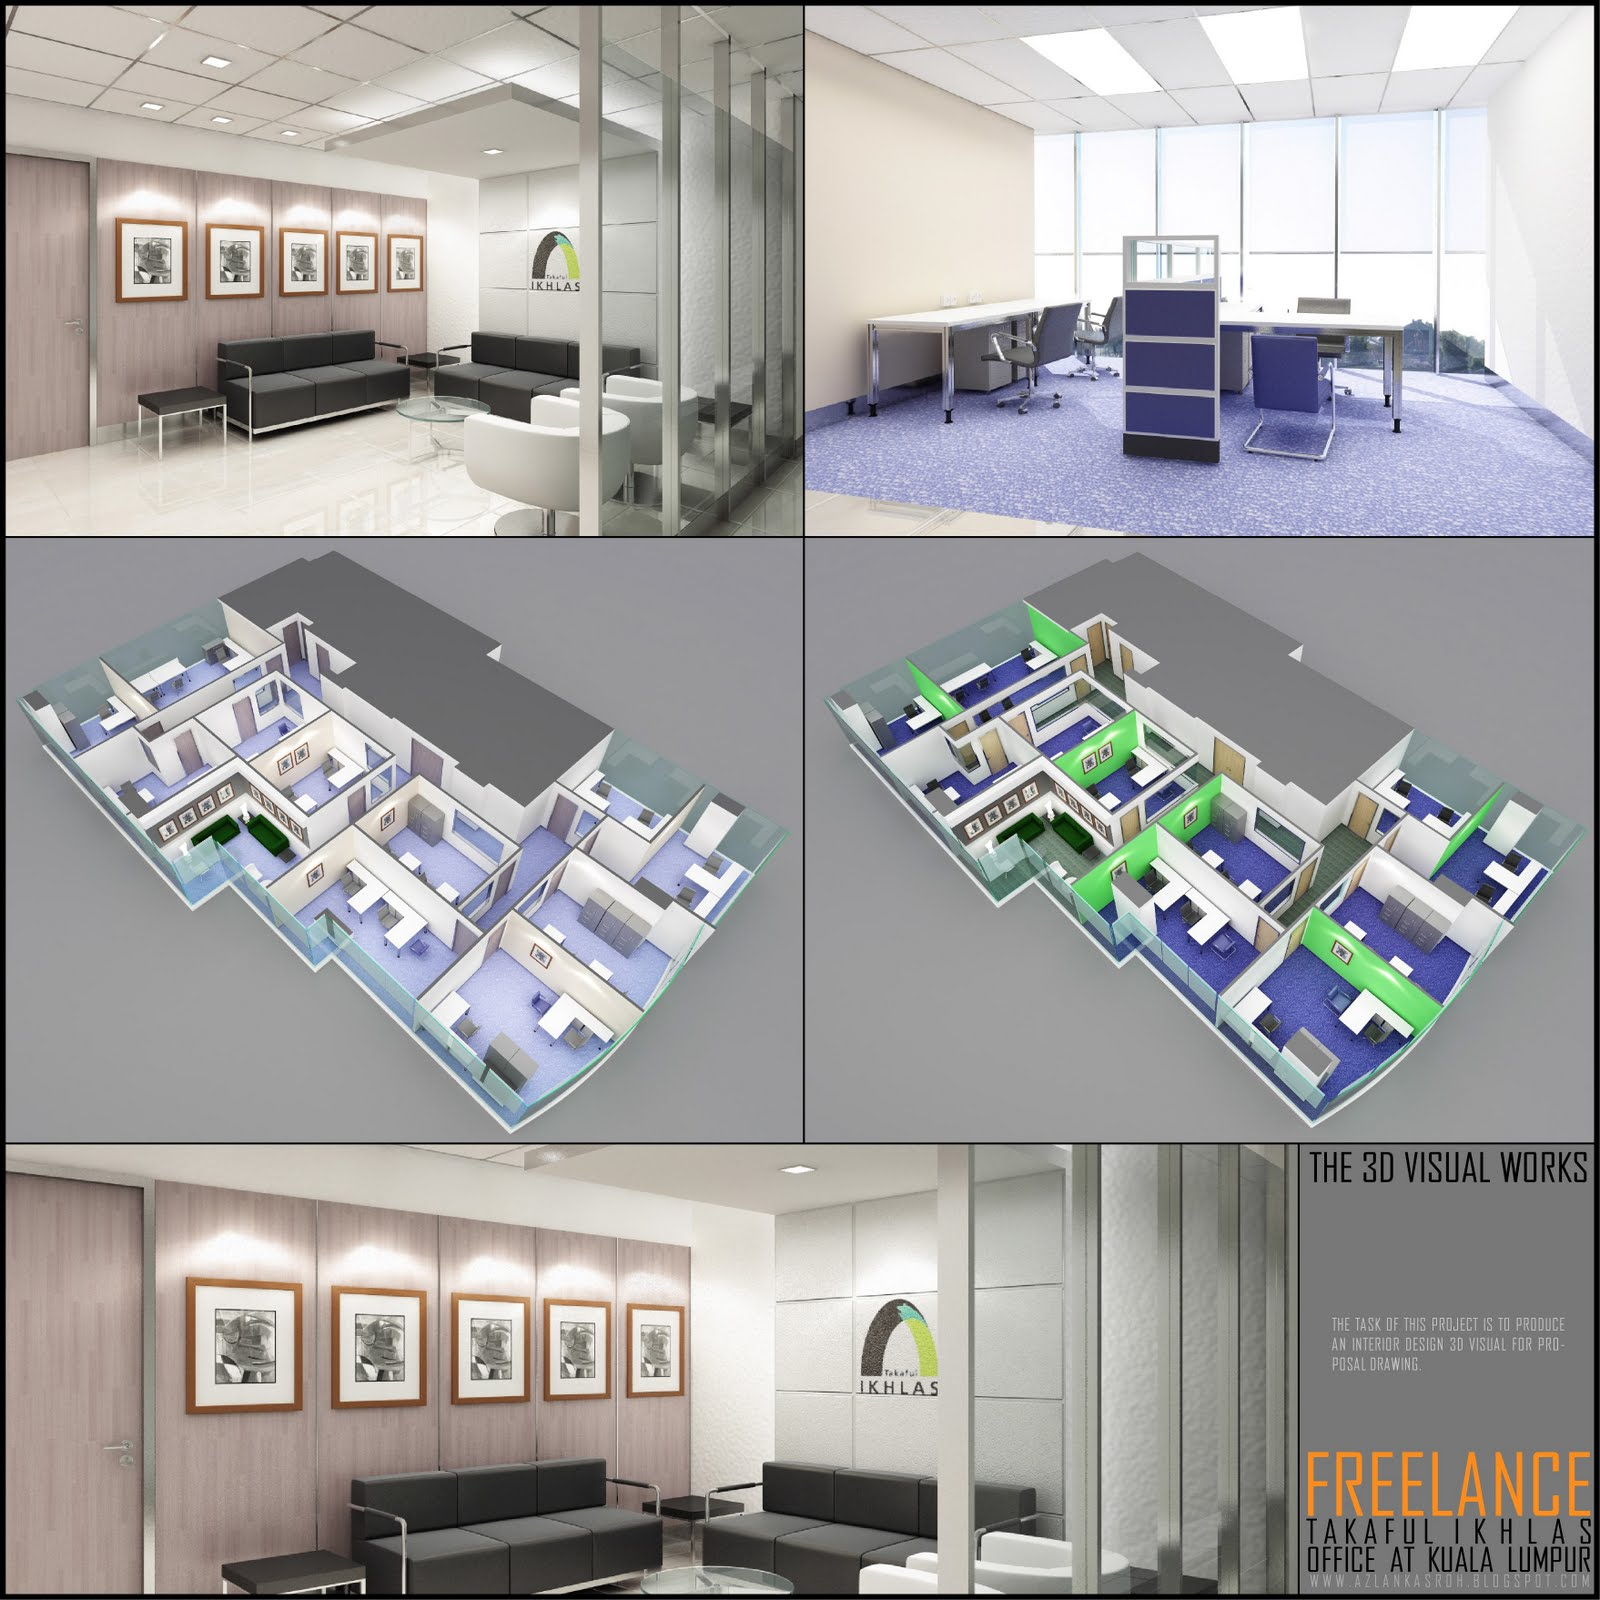 freelance project takaful ikhlas office - Interior Design Freelance Work